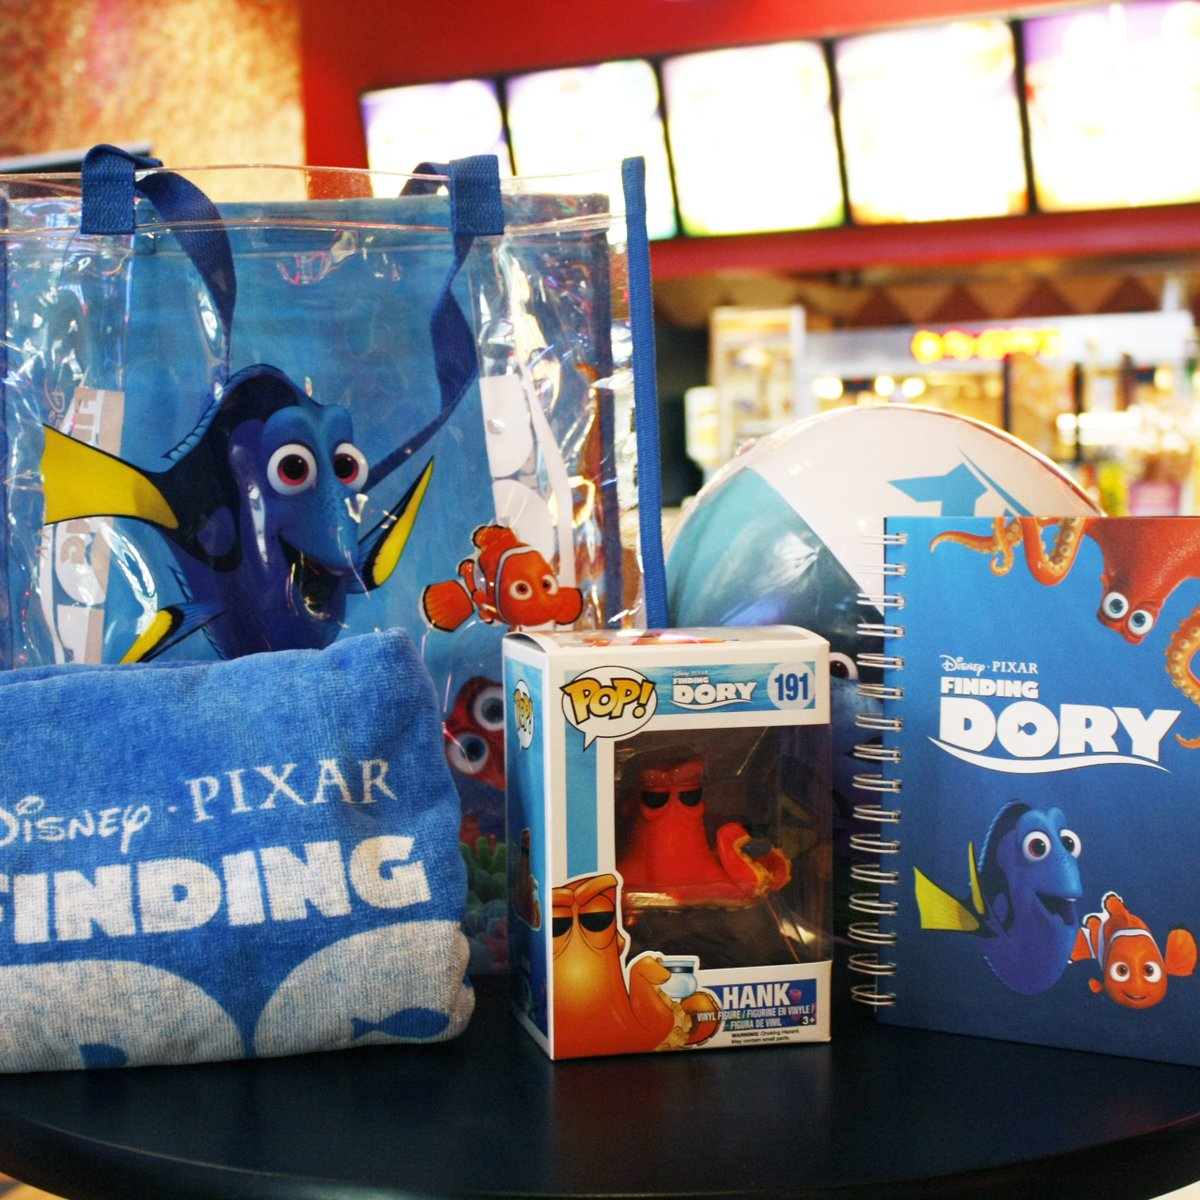 Looking for some awesome #FindingDory swag? RT for your chance to win! #contest https://t.co/w1rPpnMNxE